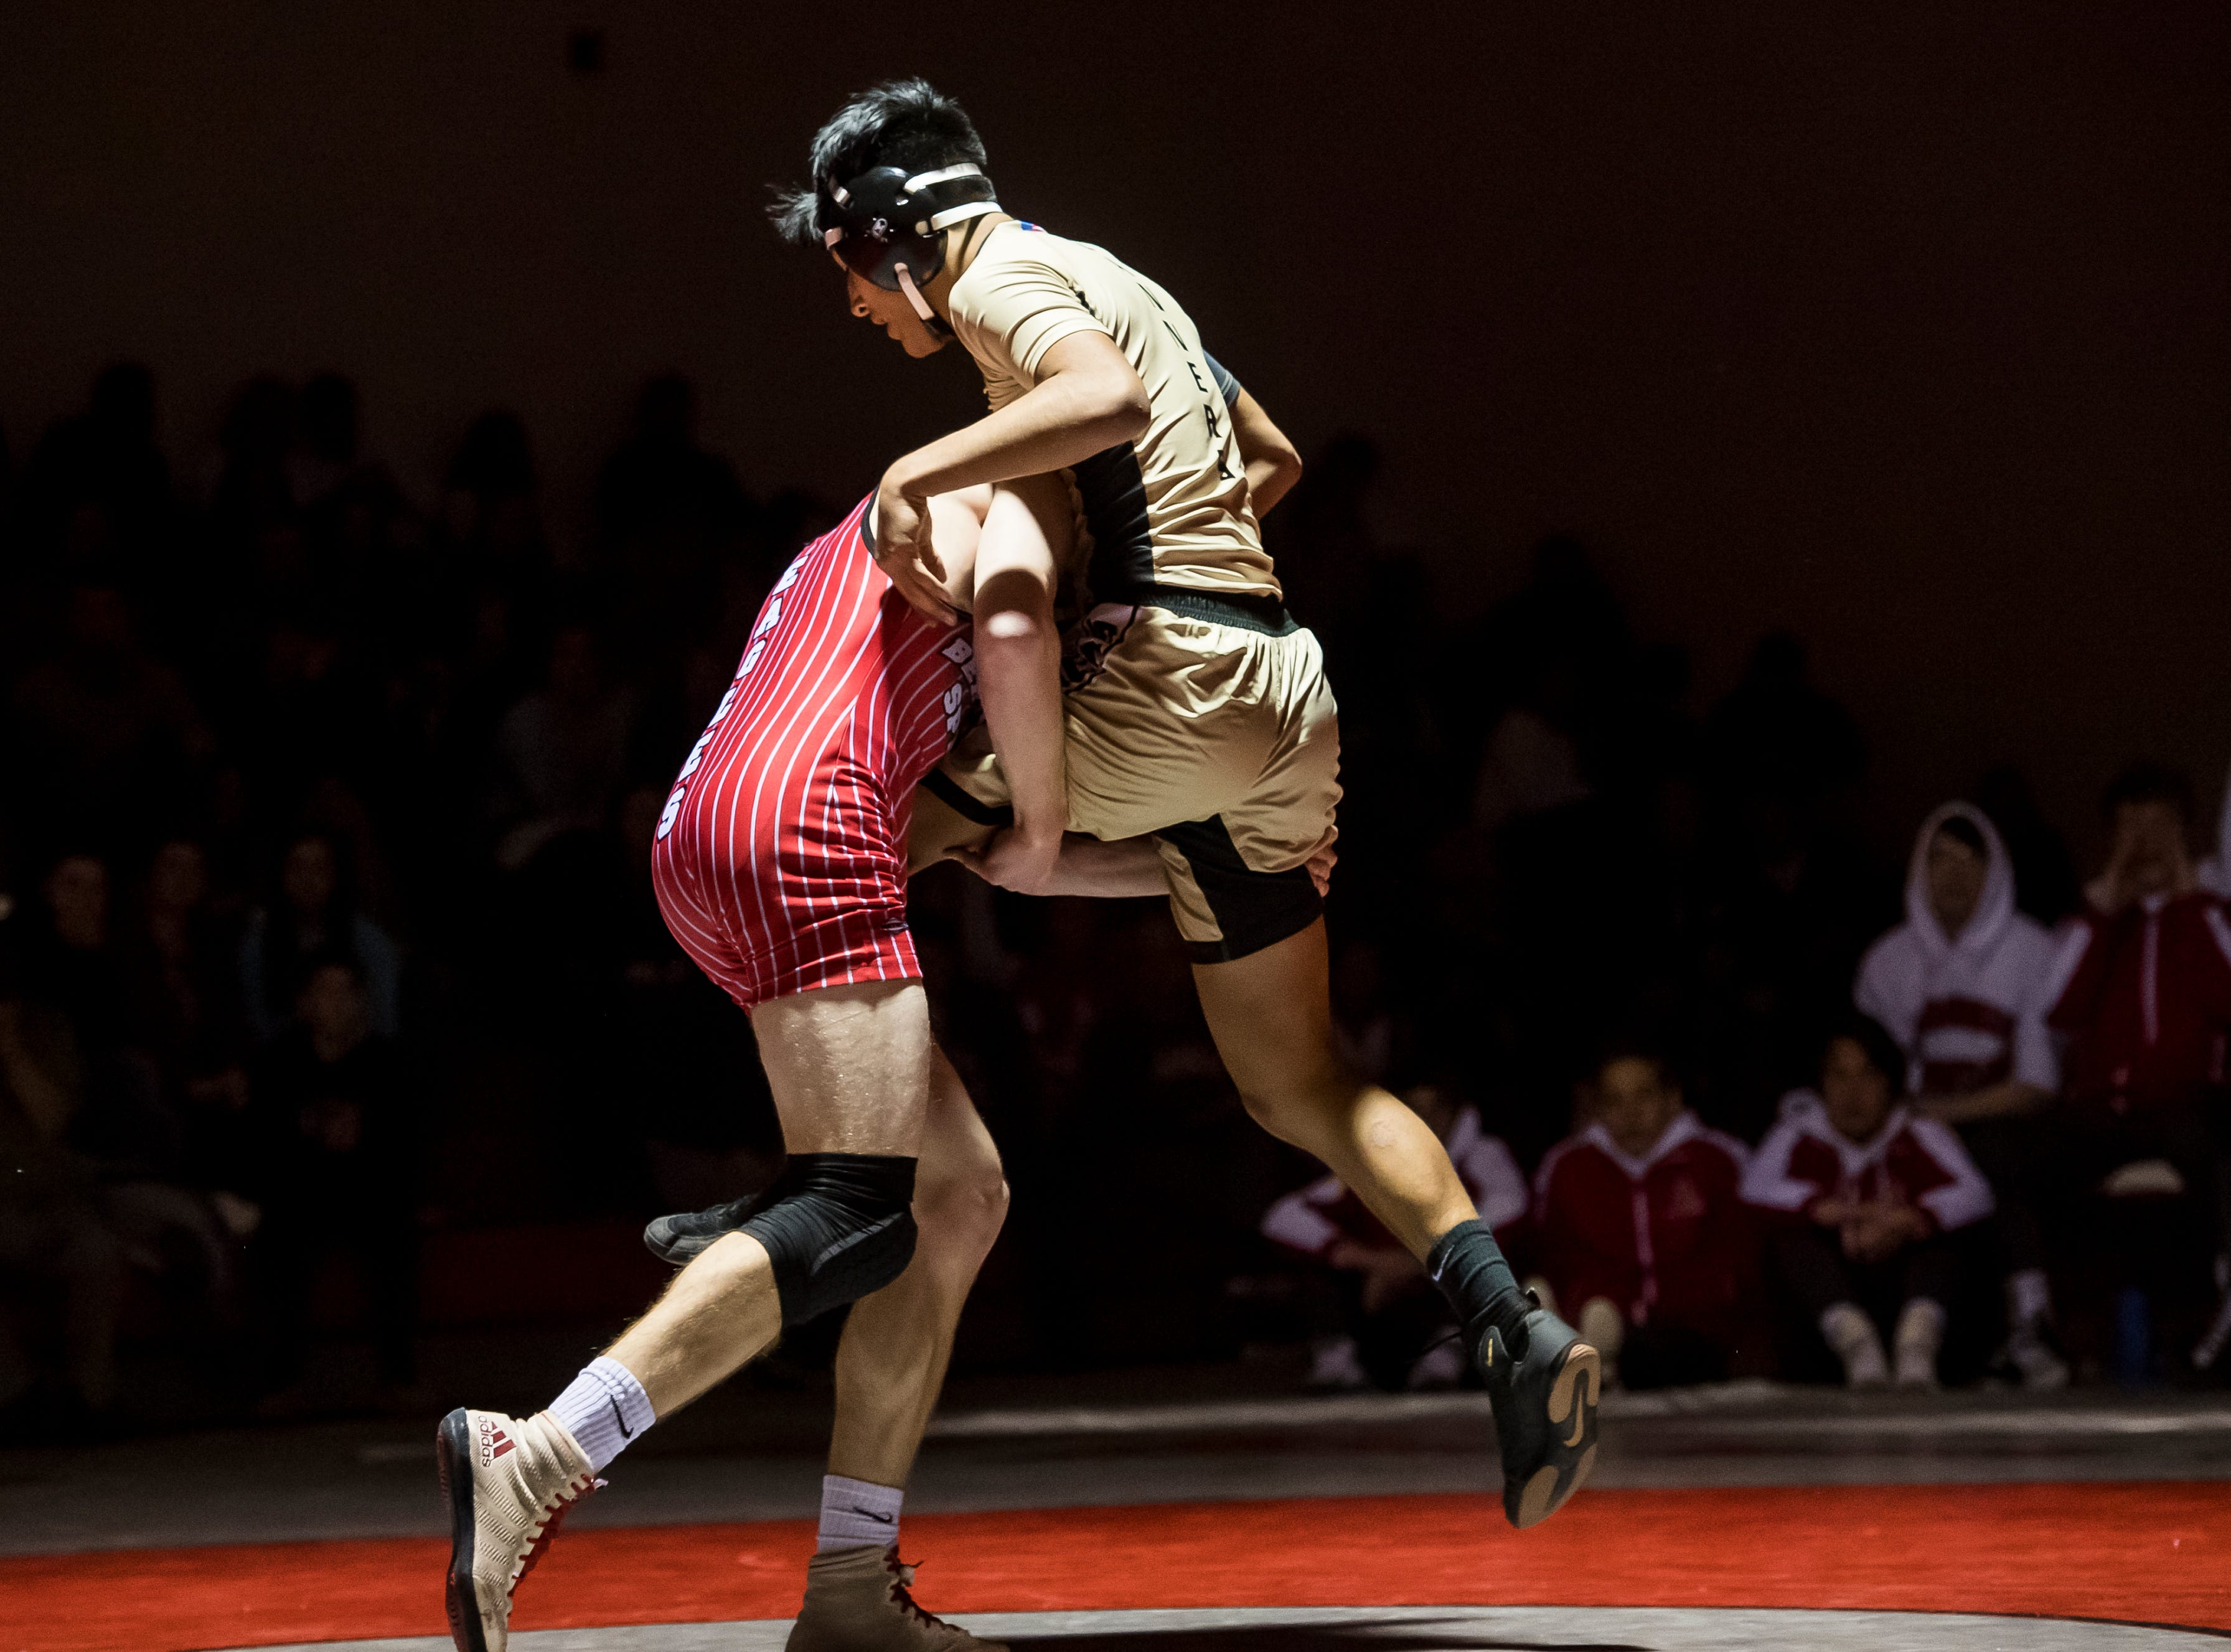 Bermudian Springs' Tanner Althoff, left, lifts up Biglerville's Isaac Sierra-Soto in the 152-pound bout at Bermudian Springs High School on December 13, 2018. Althoff won by fall and the Eagles won the duel 51-27.